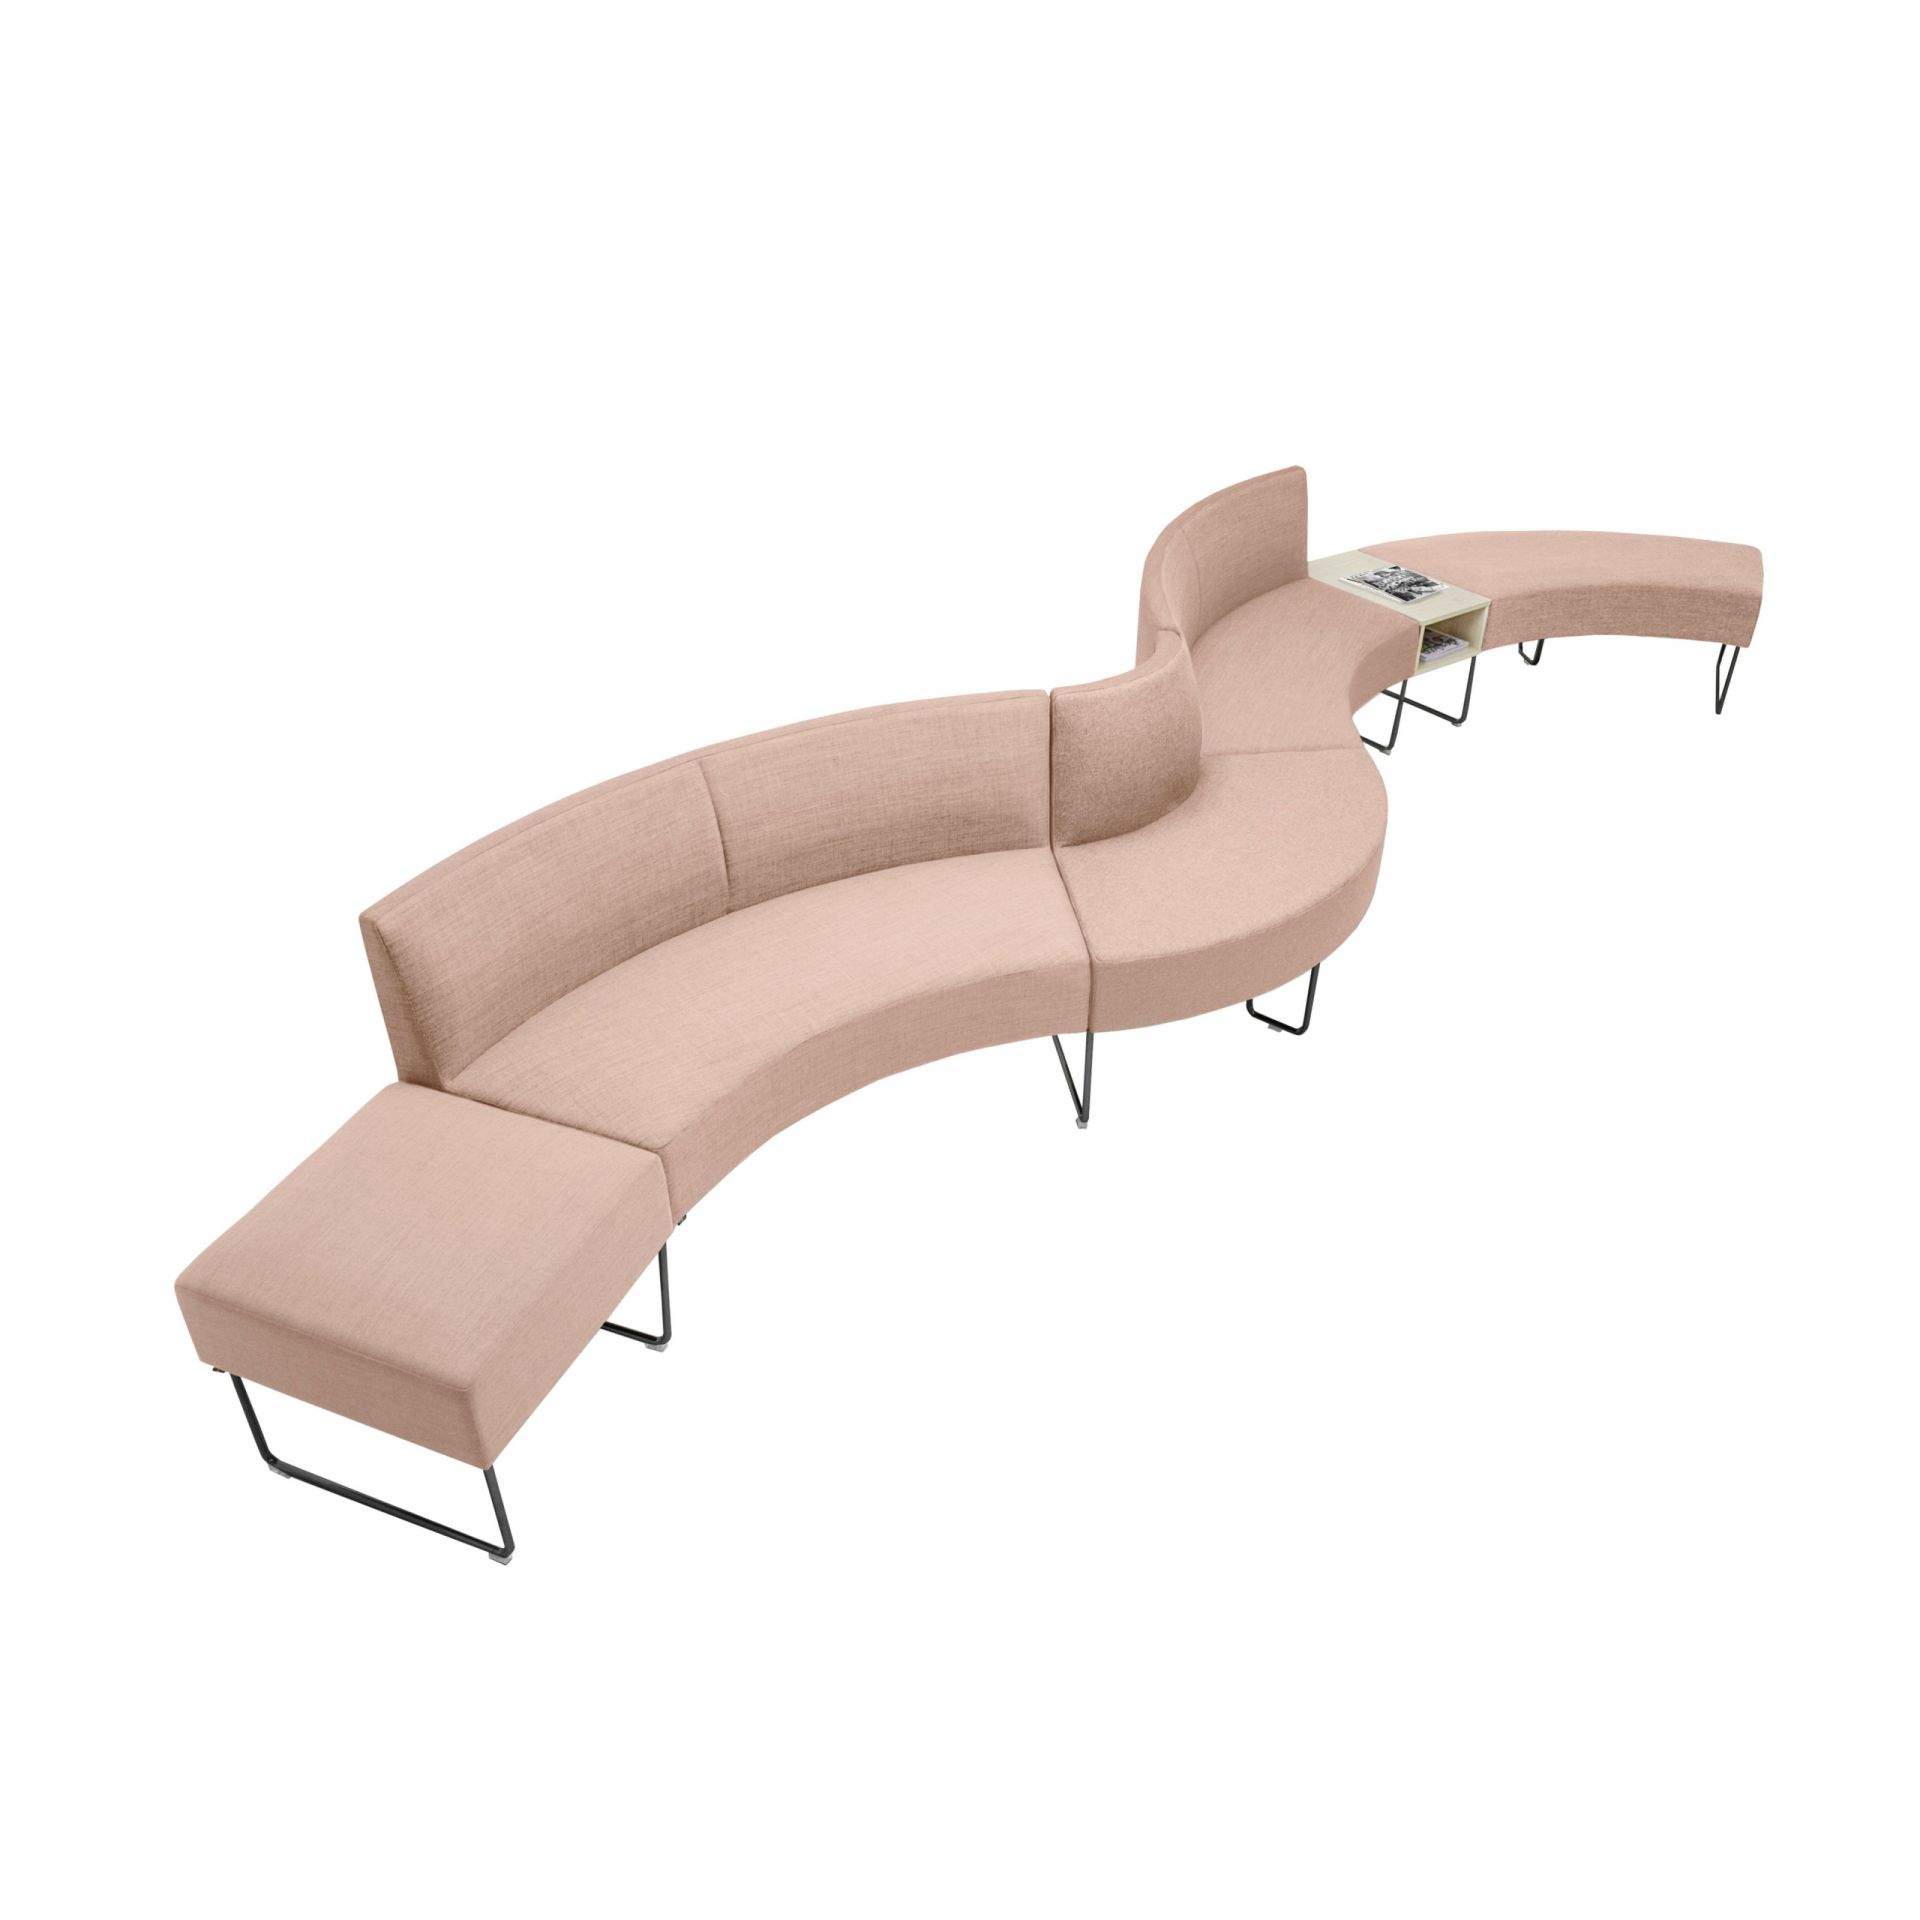 Mingle Buildable seating modules product image 1